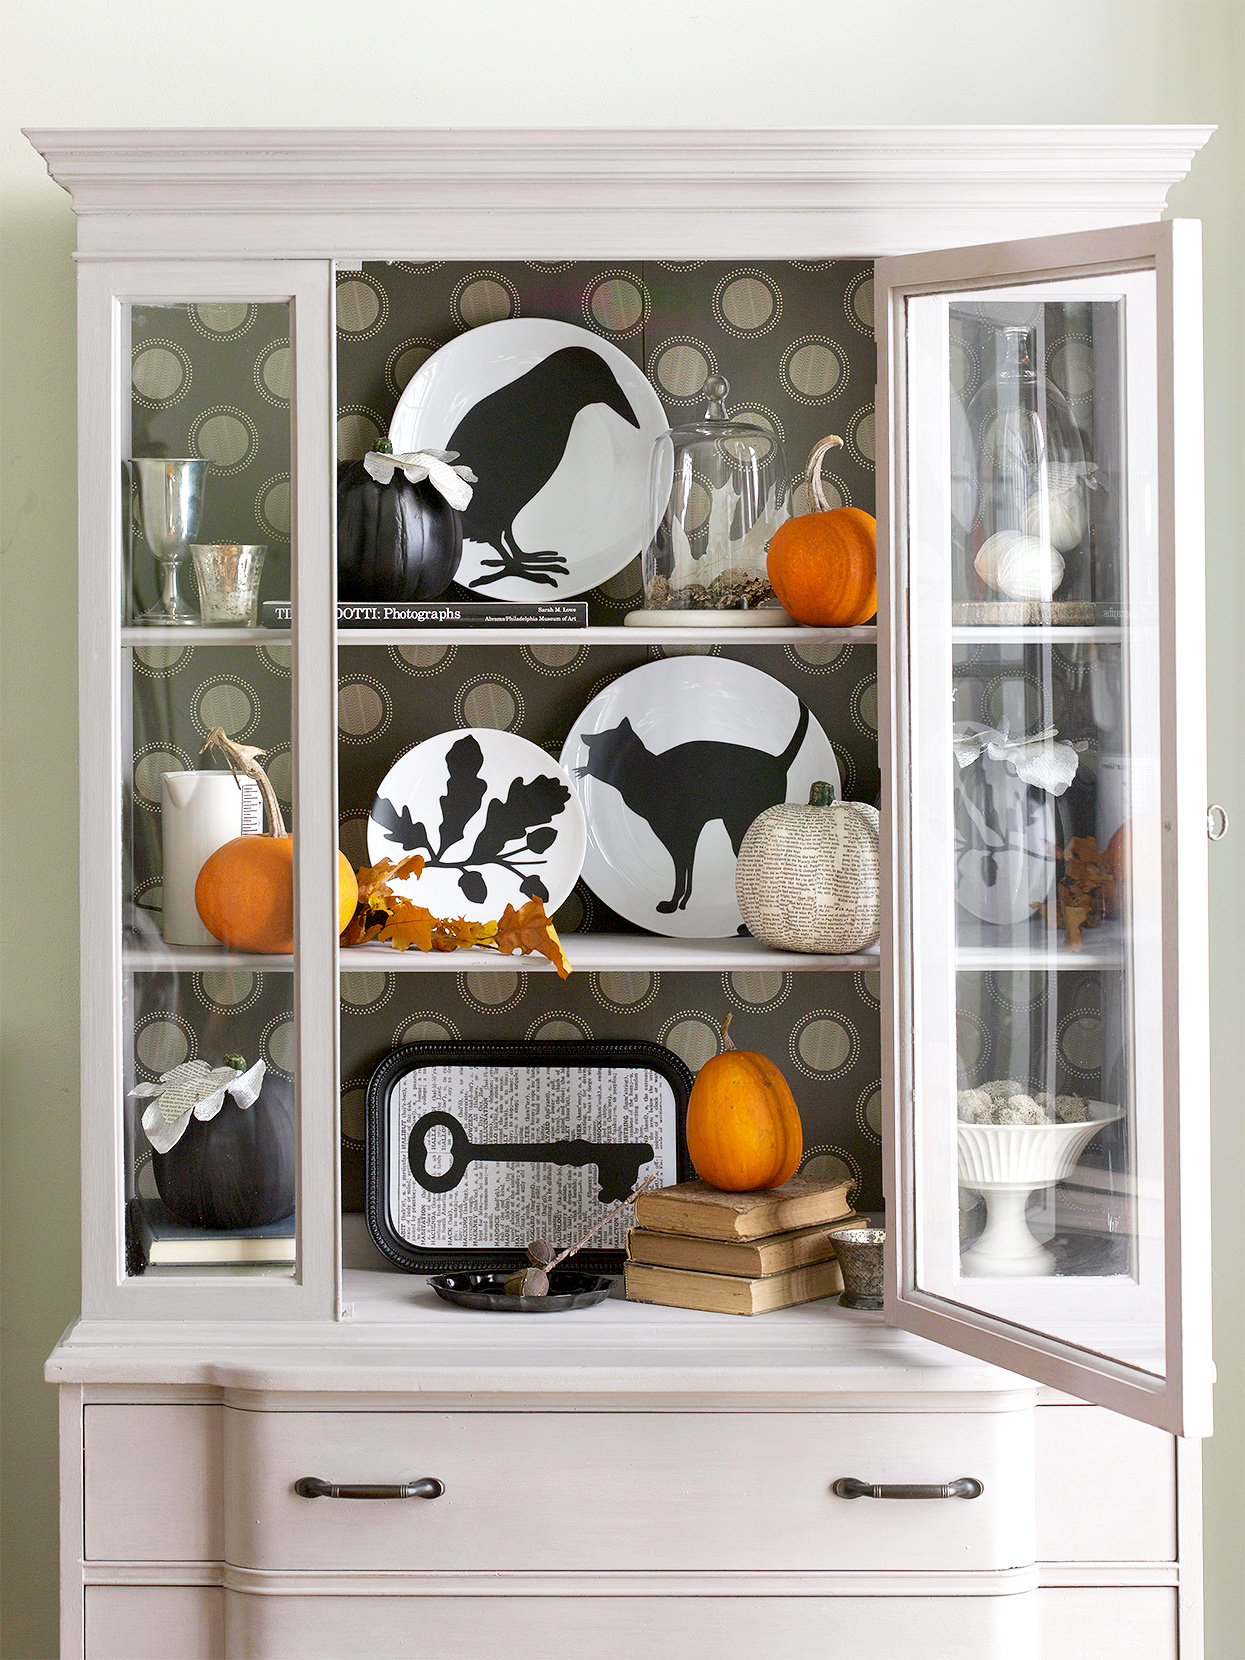 Halloween silhouettes adhered to plates in cabinet